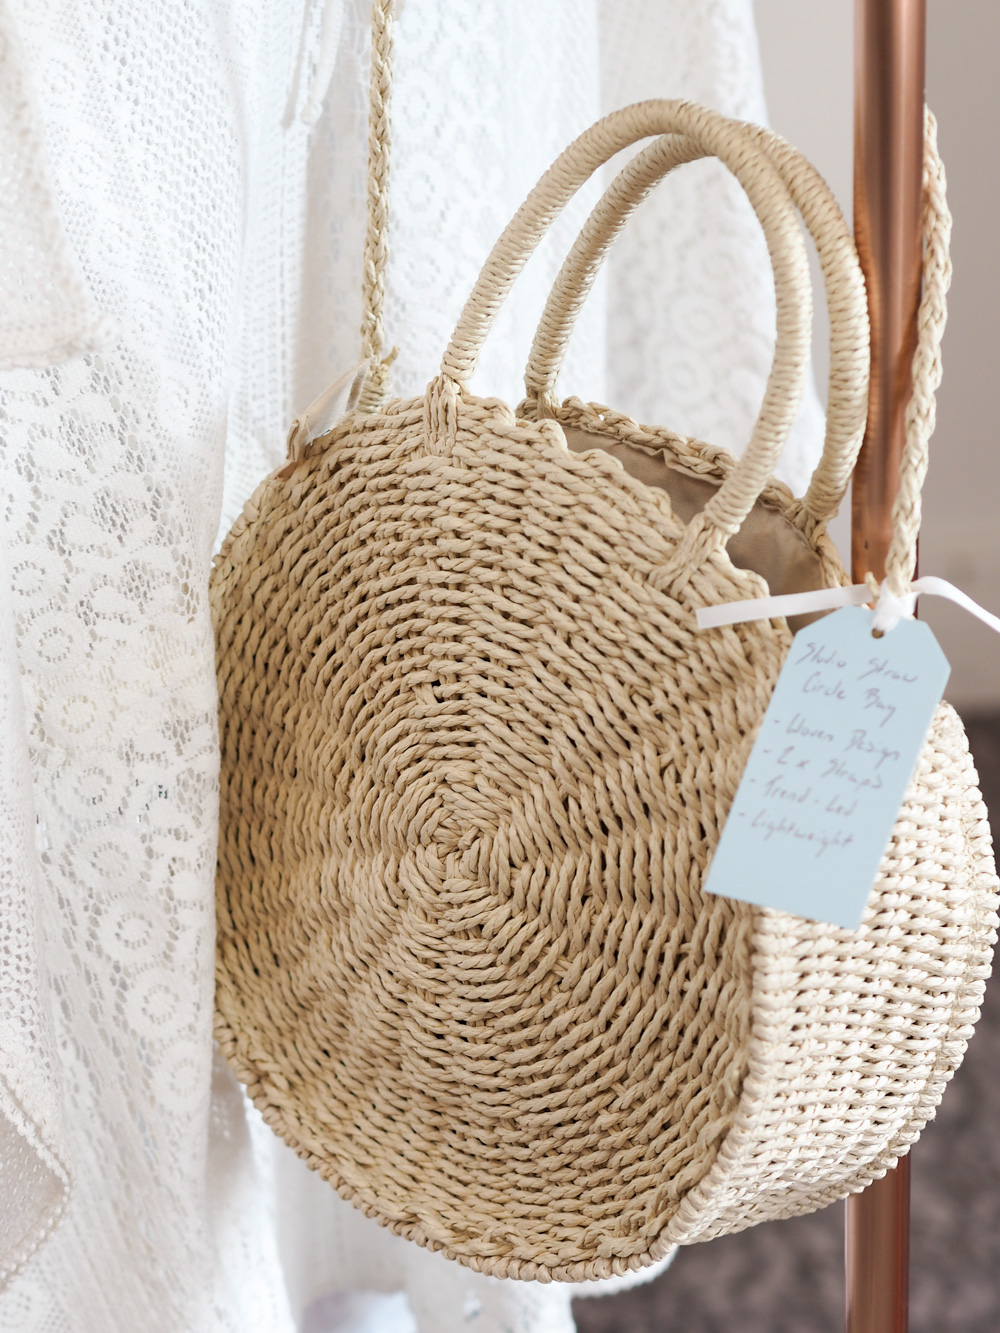 Woven basket bag from Studio.co.uk, the home of affordable interiors